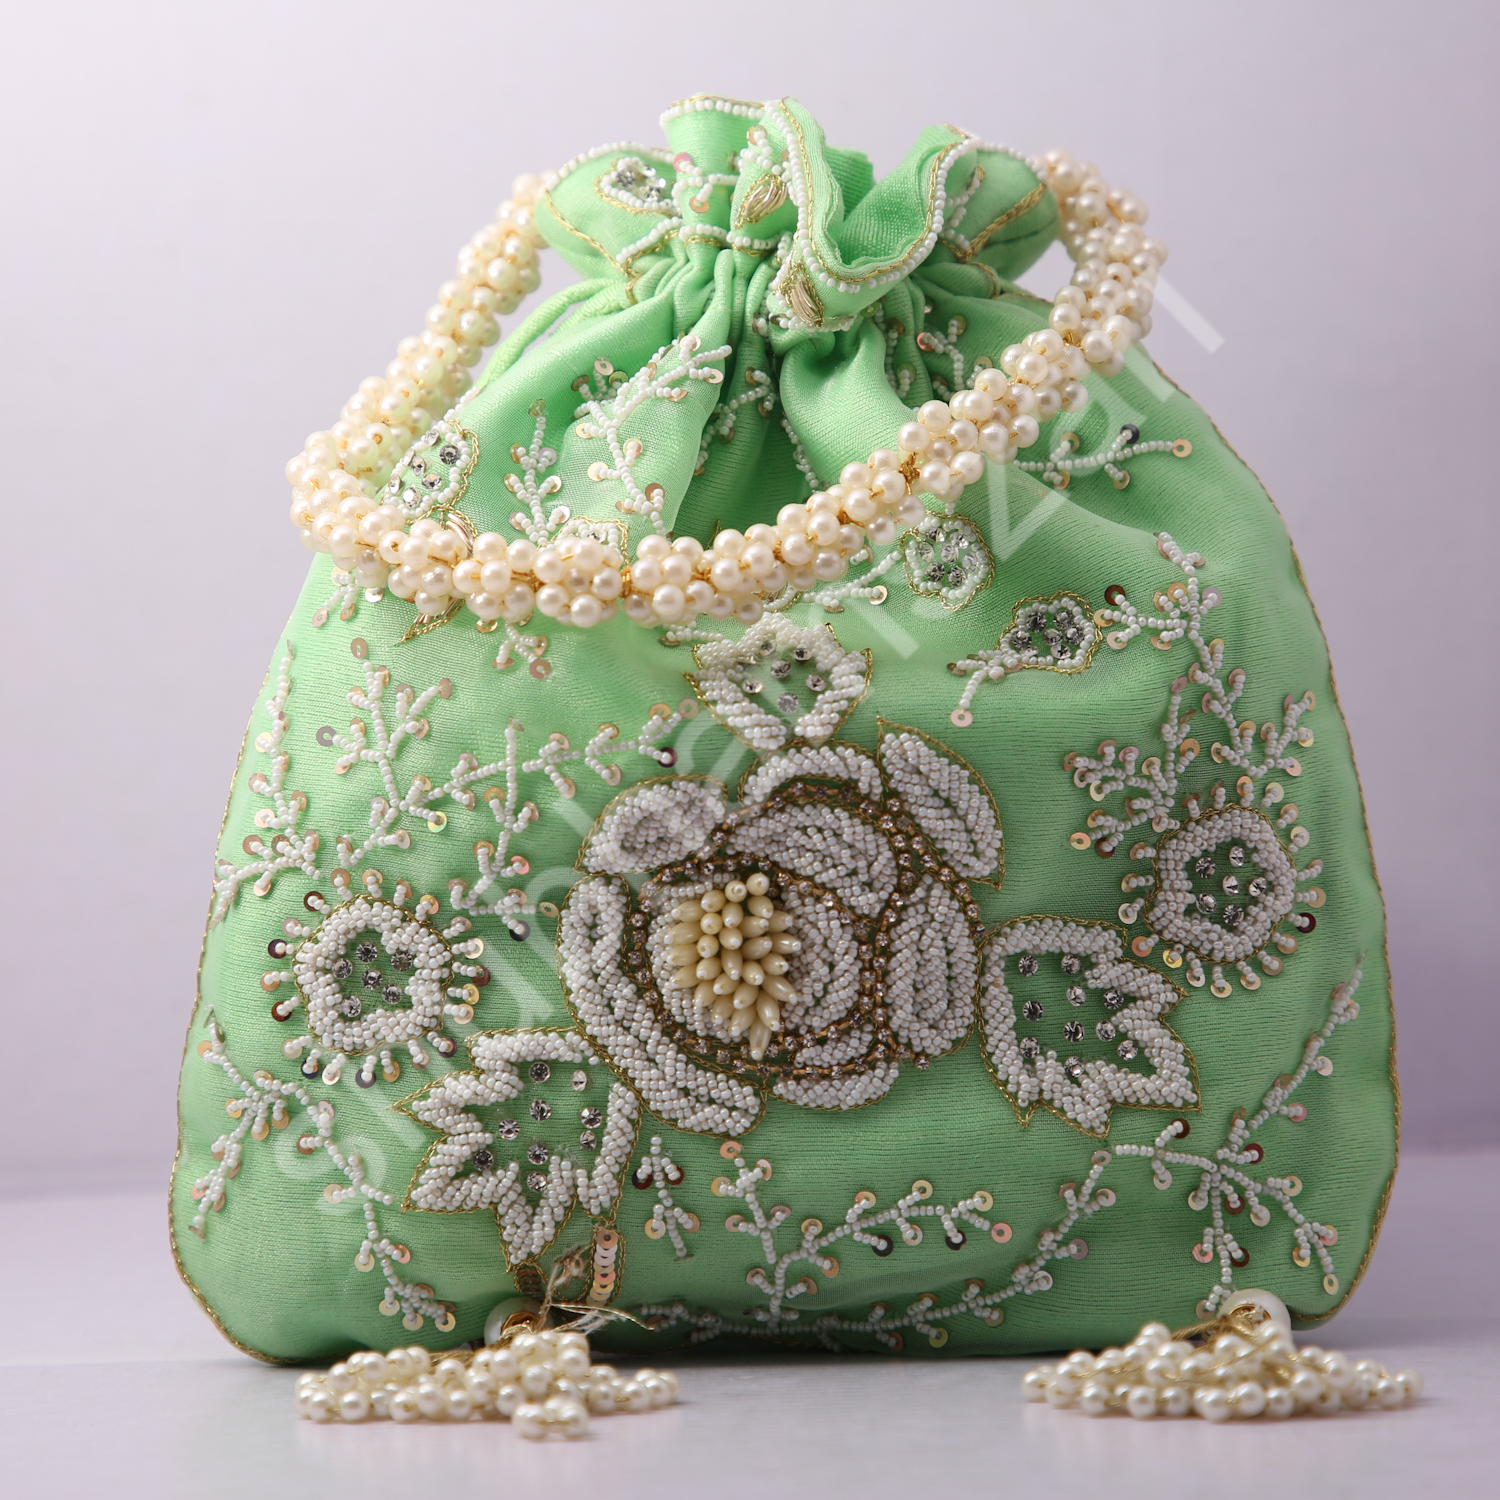 11.Wedding Hand Crafted Potli Bag With Beaded Chain For Women|| Evening Bags|| Embroidery Handbag